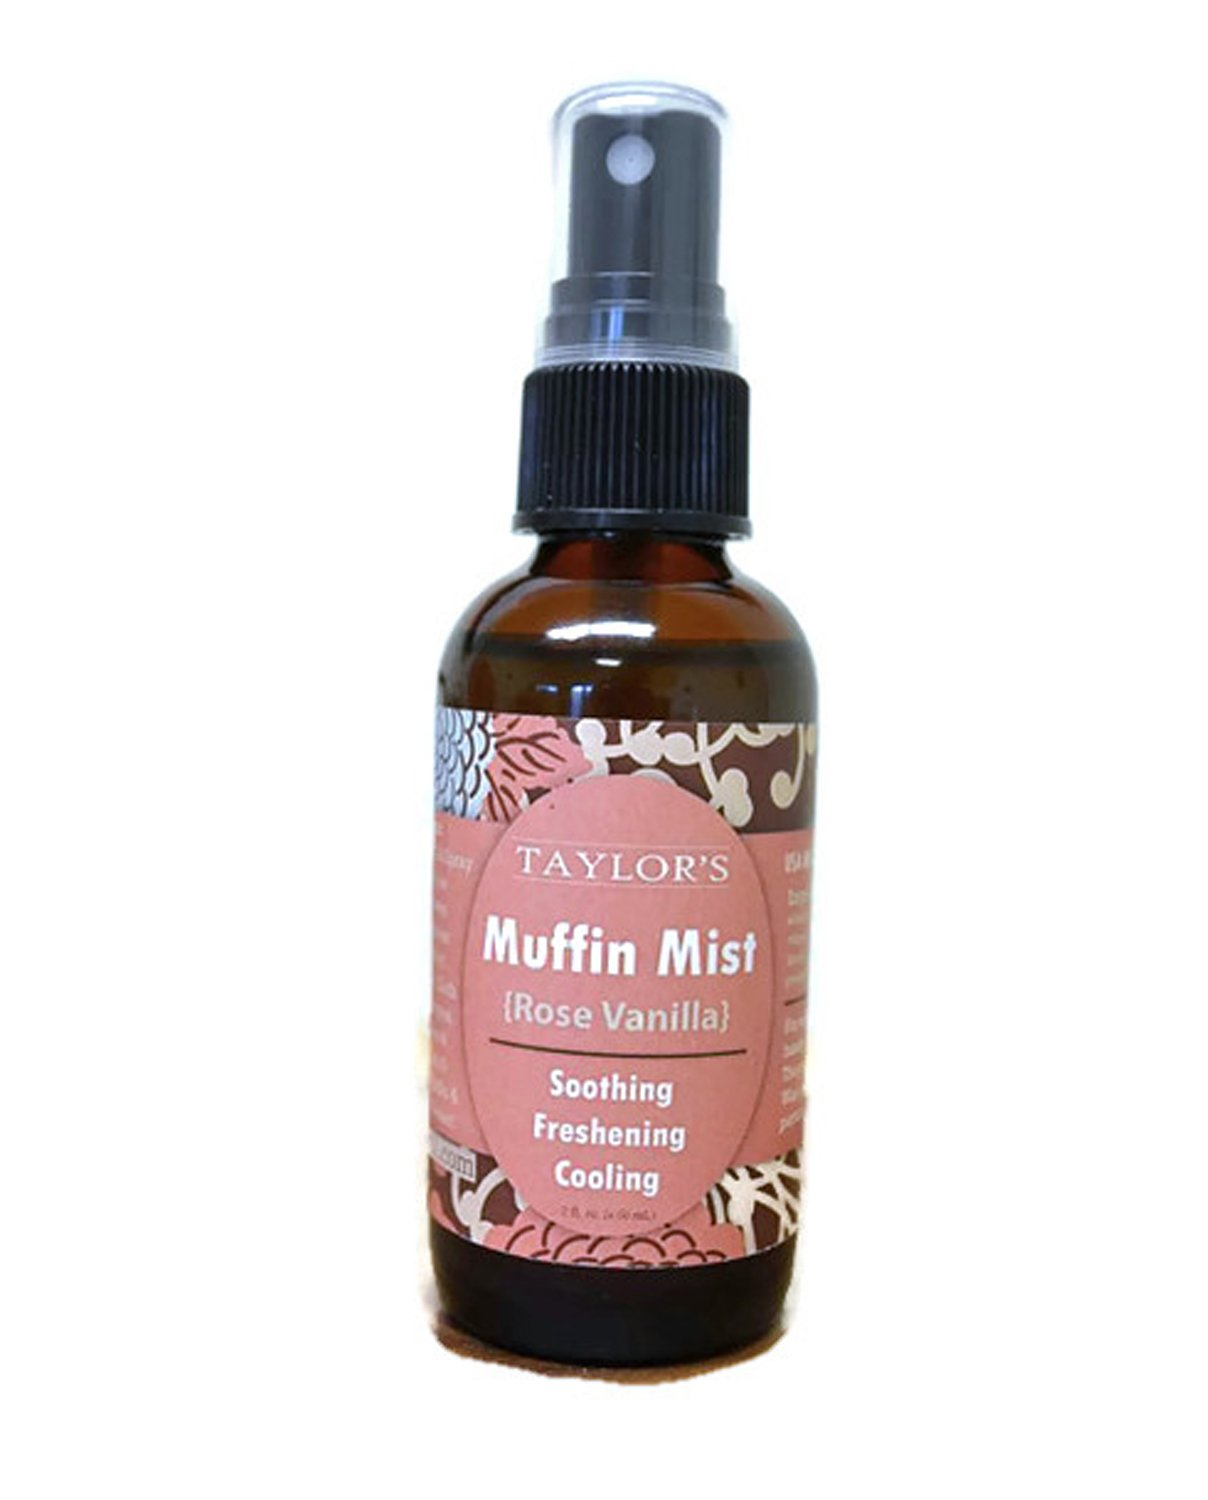 ELEVATED (by TAYLOR'S) Muffin Mist - All Natural Feminine Spray - Soothing, Freshening, Cooling - Made in USA! … (Rose Vanilla)